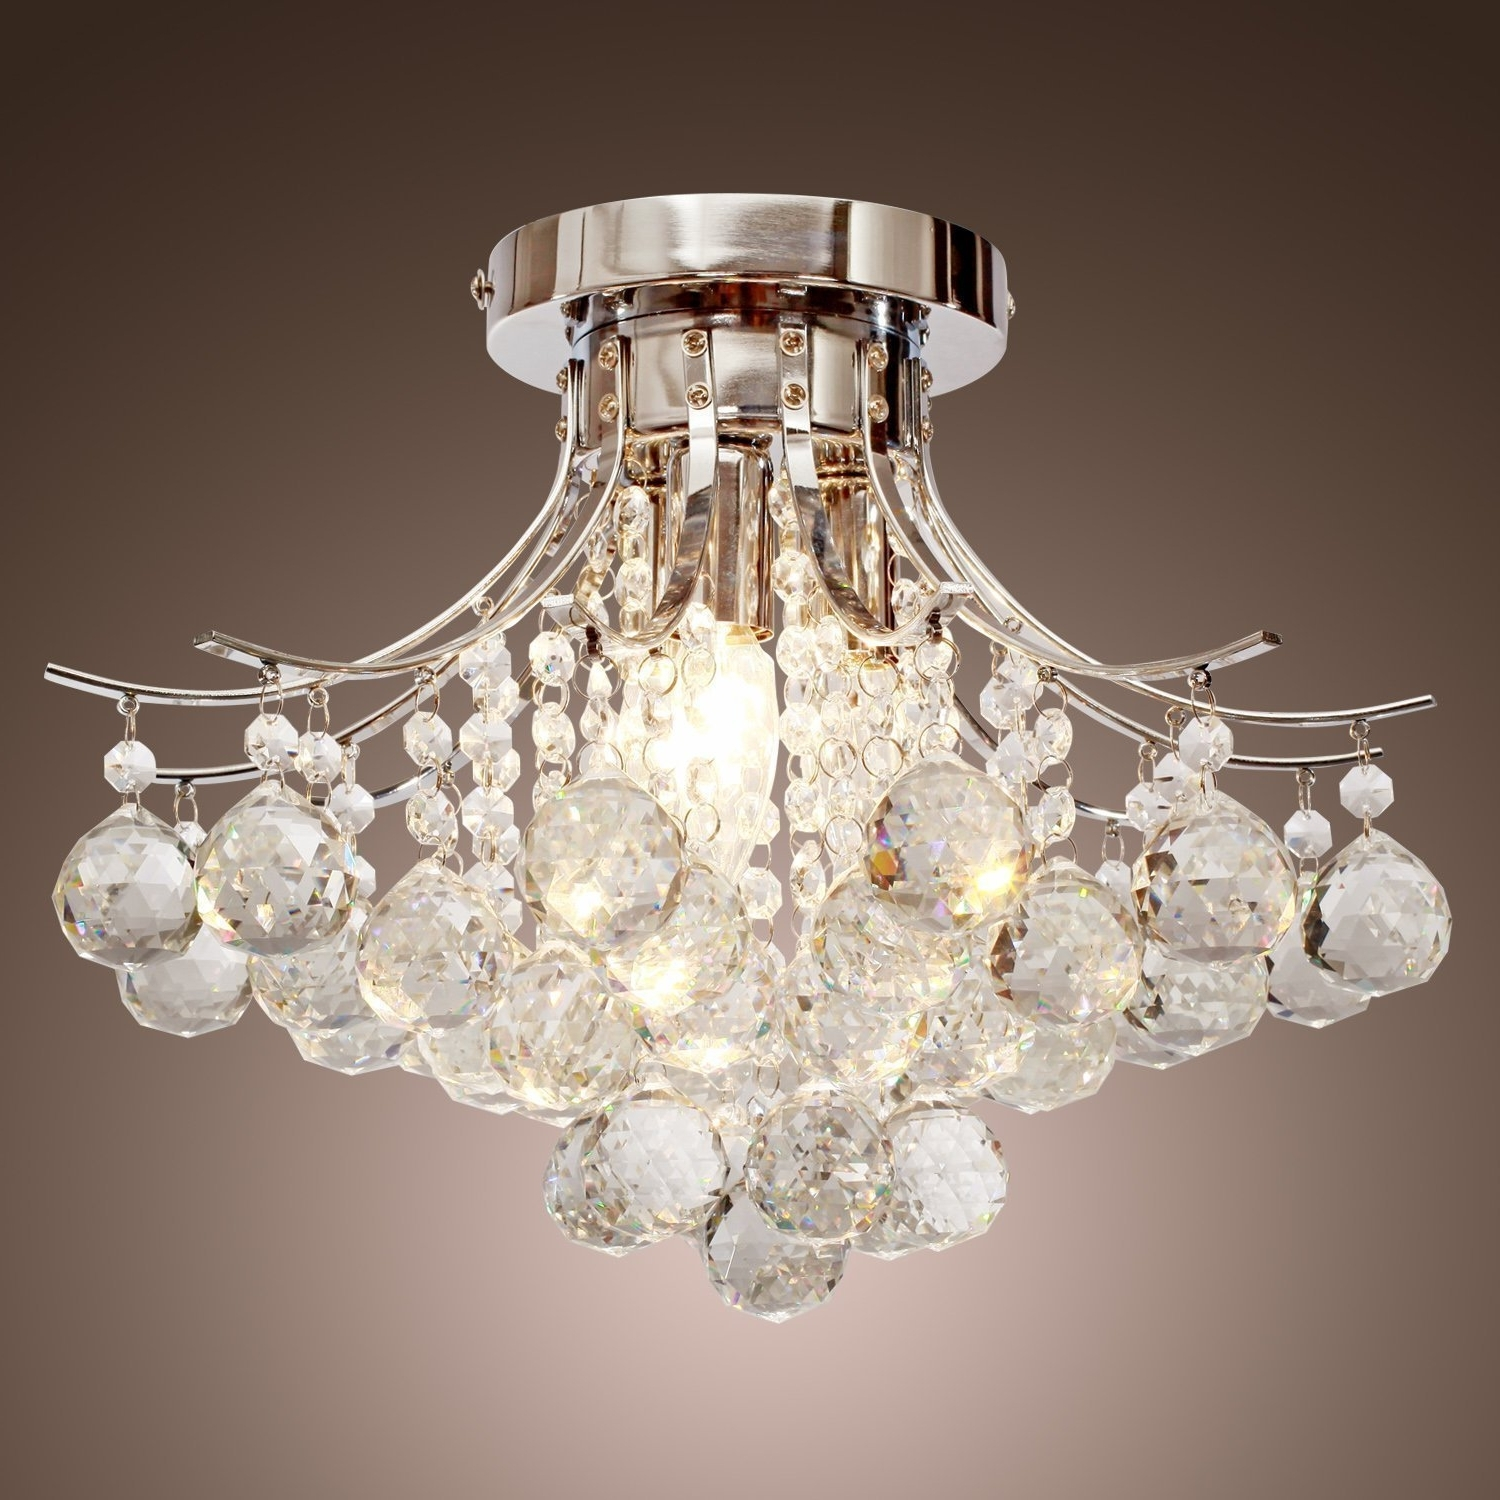 Fashionable Small Chandeliers For Low Ceilings With Regard To Light : Living Room Ceiling Lights Close To Flush Mount Lighting (View 8 of 20)